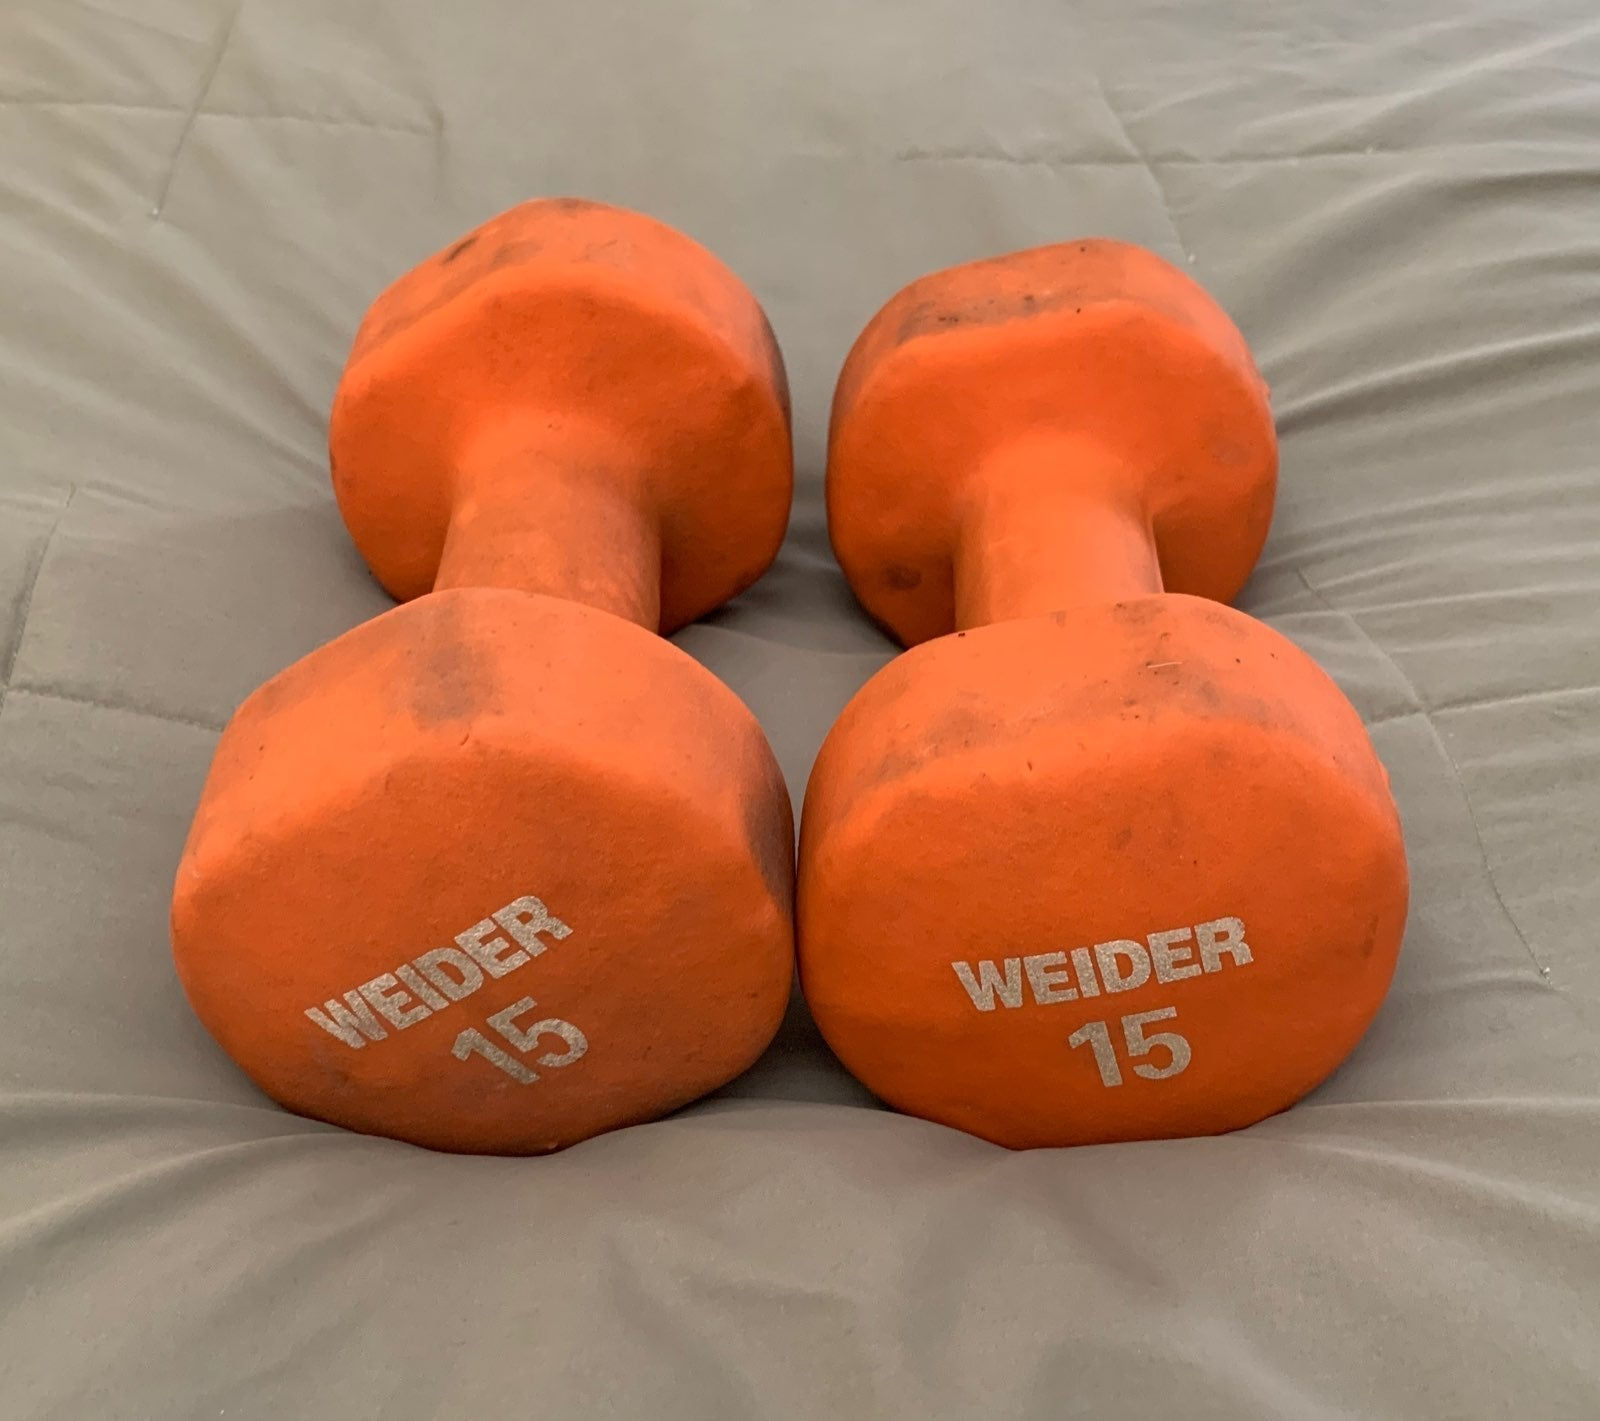 15lbs Dumbbells Set of 2 Weider Orange